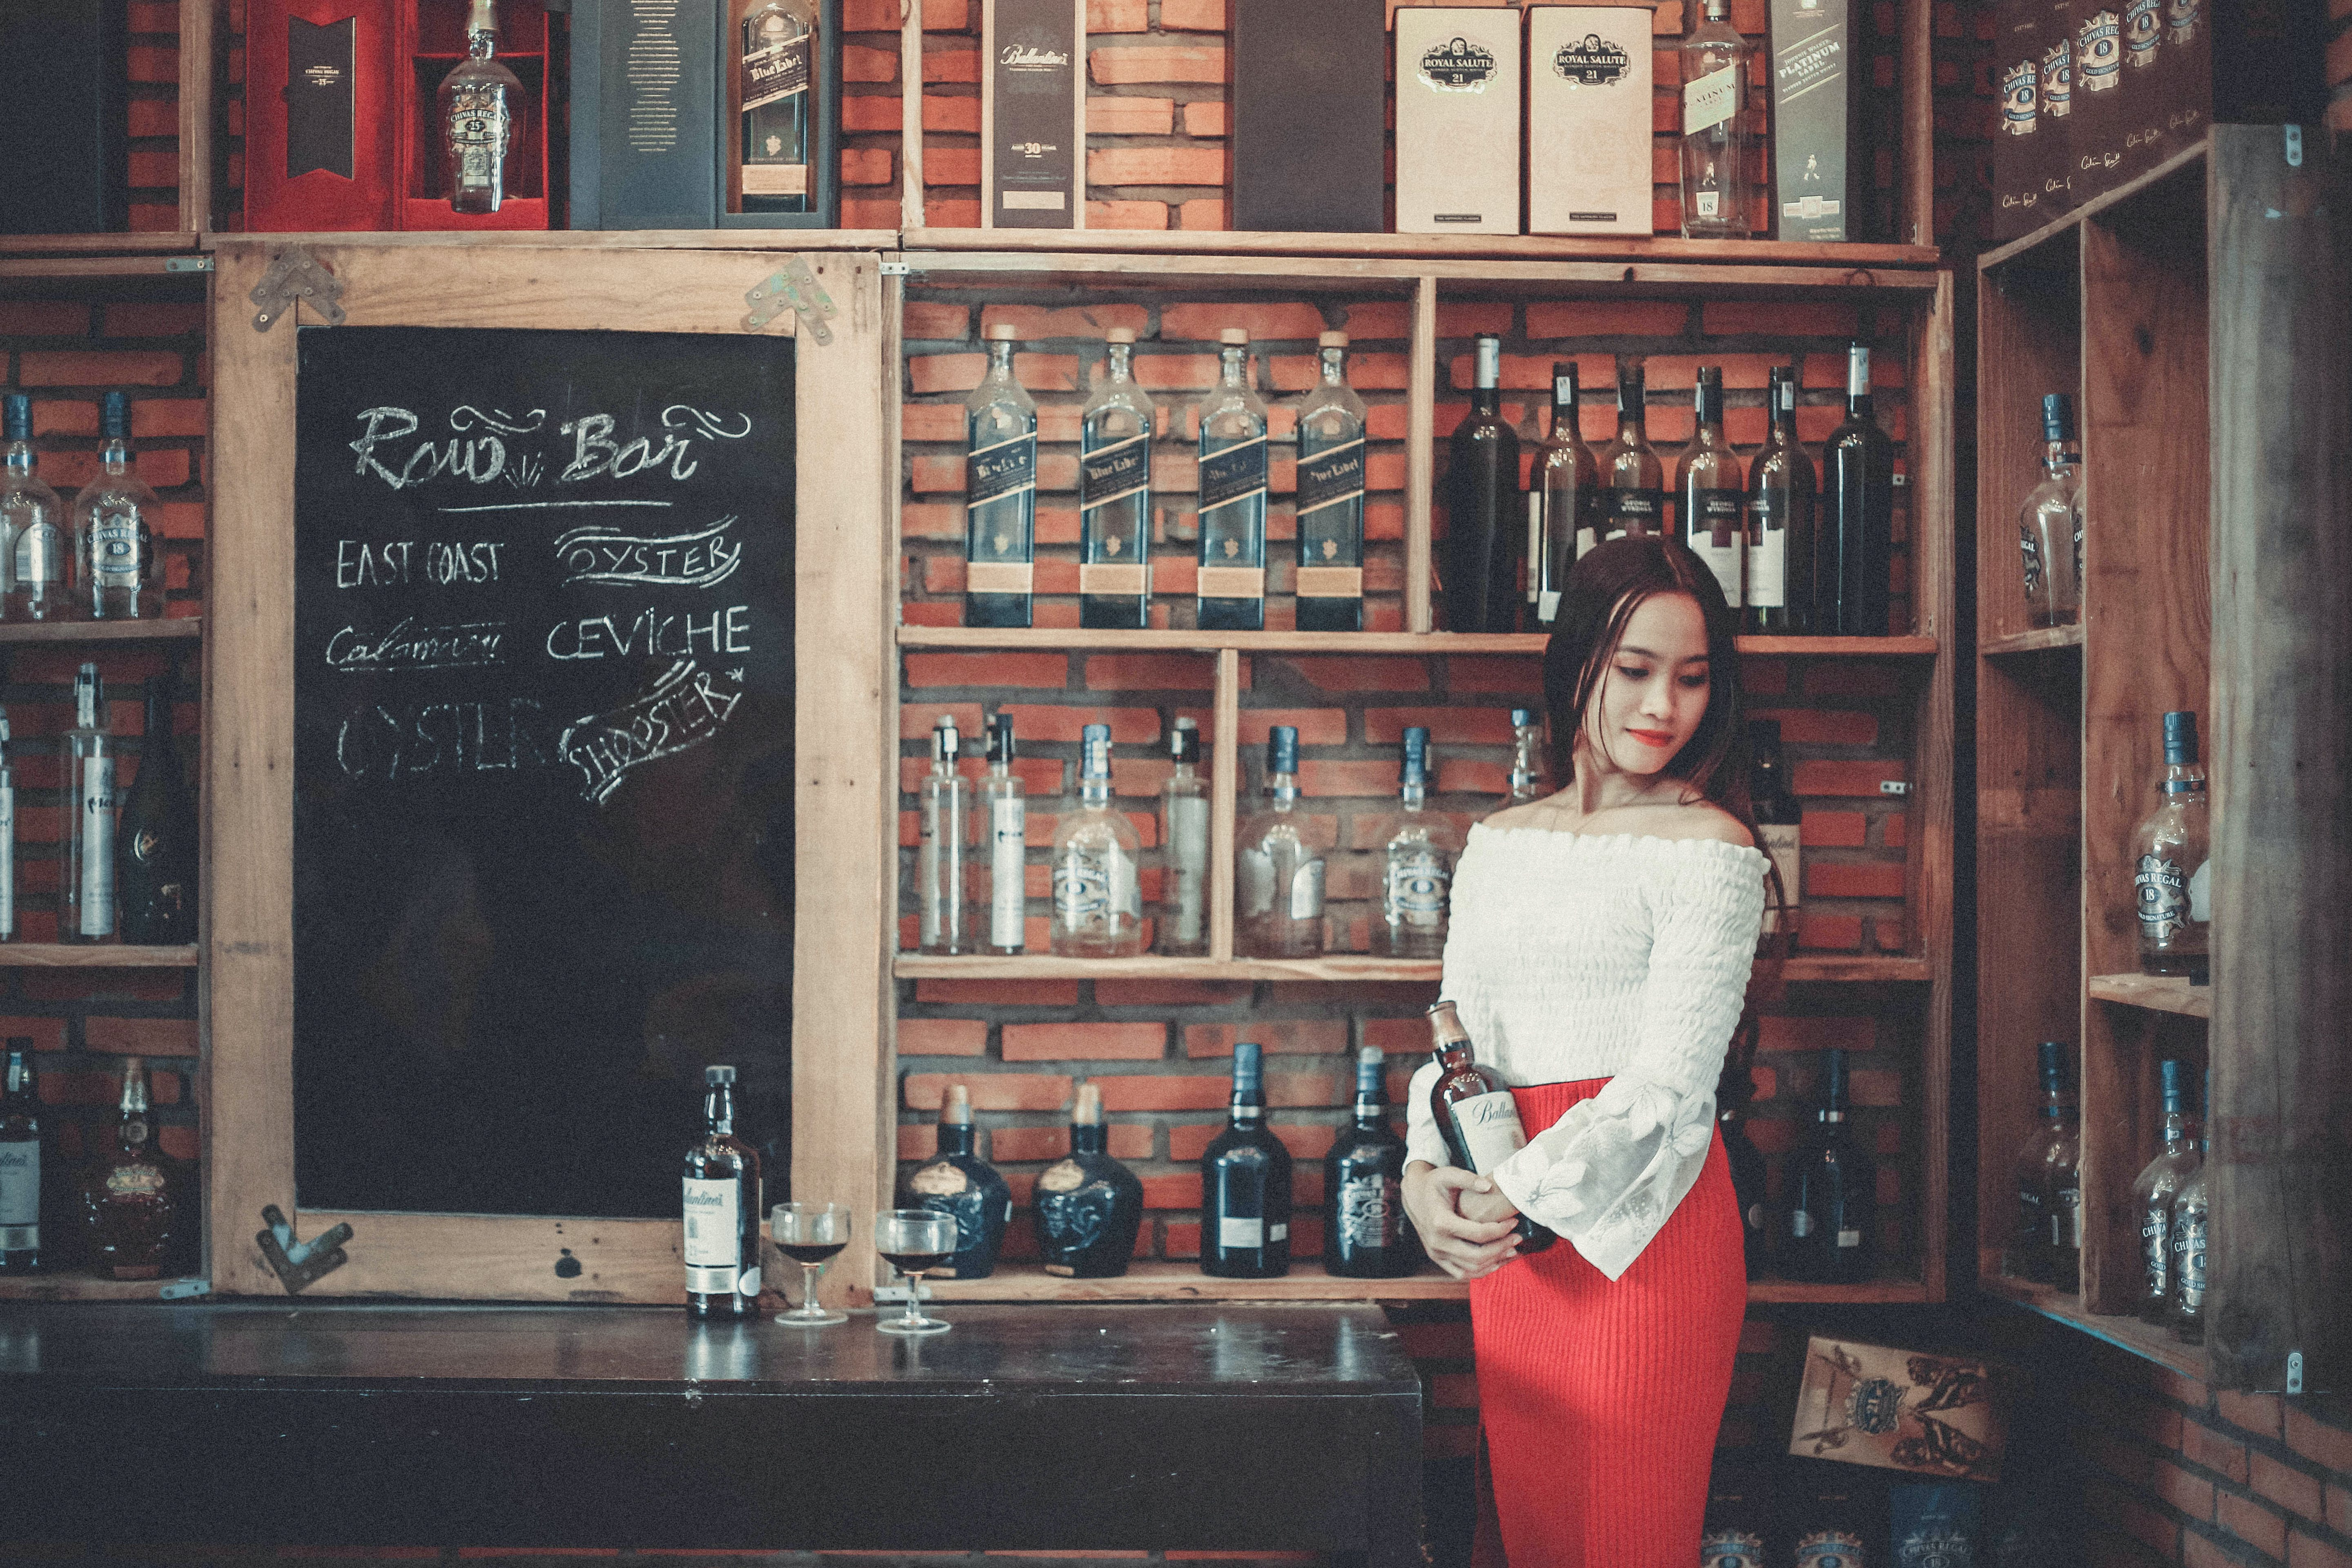 Woman with Alcoholic Beverages